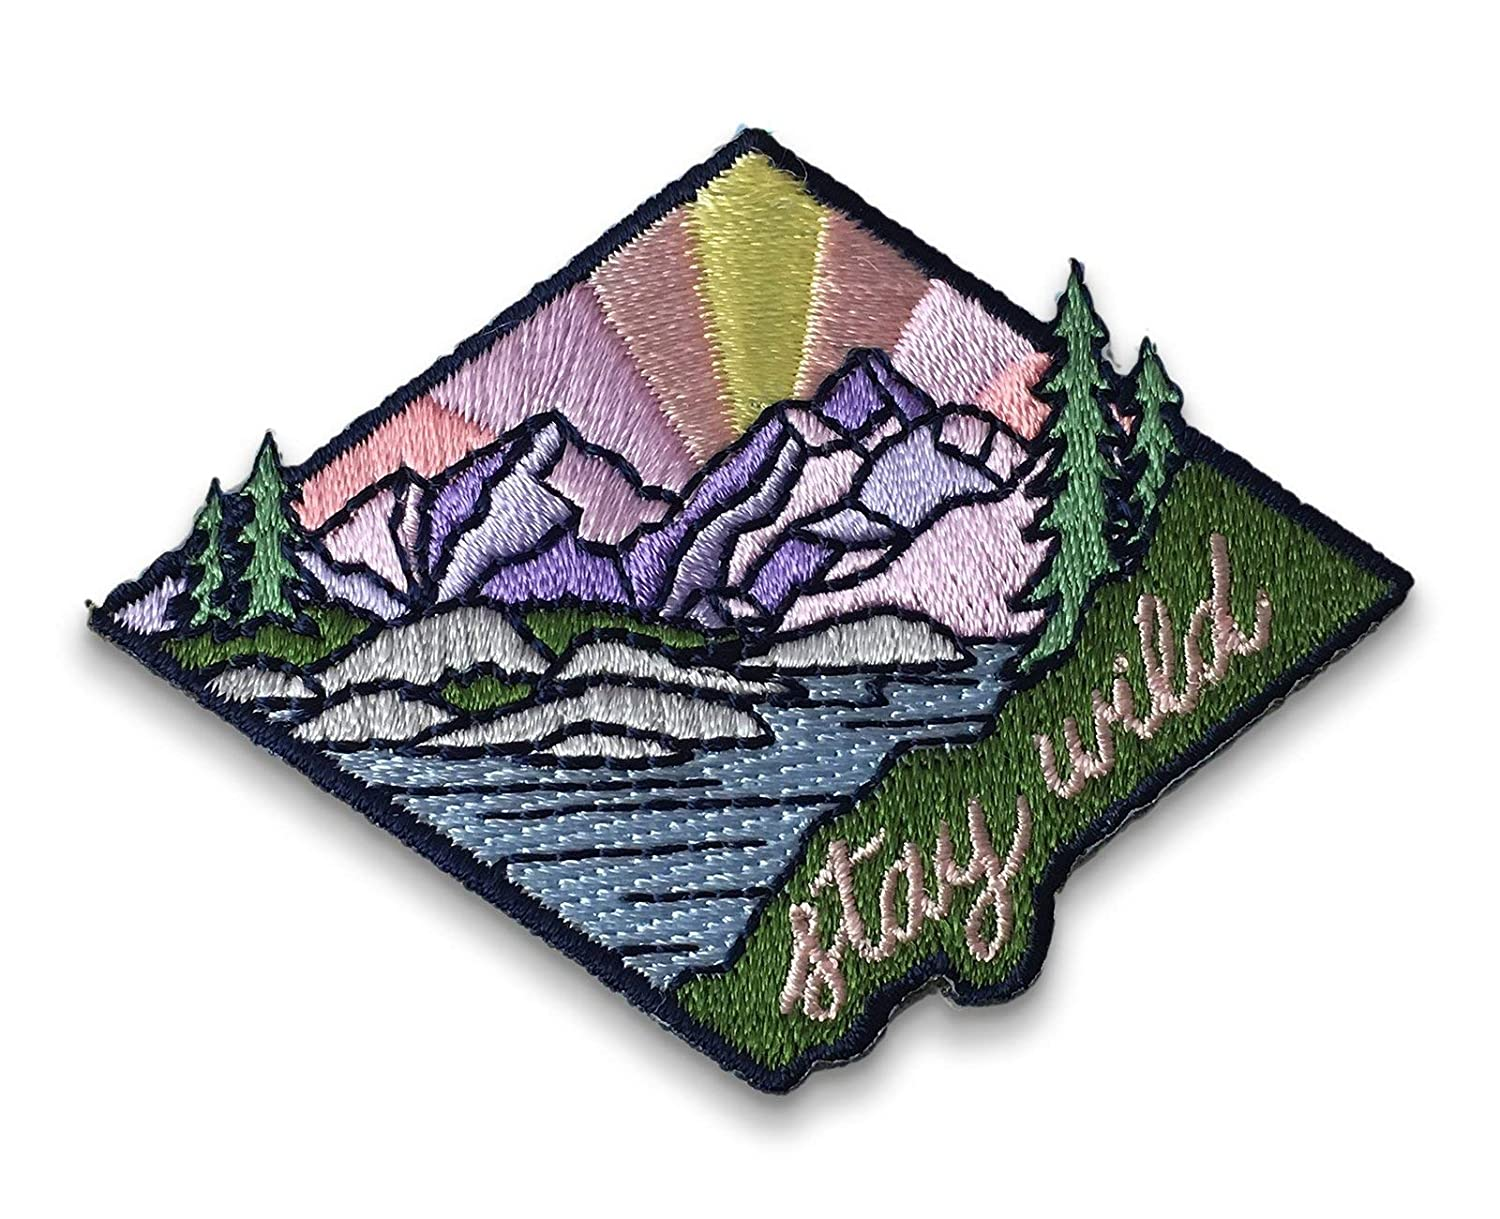 Outdoors Camp Iron on Patch Stay Wild Inspiring Positive Embroidered Applique